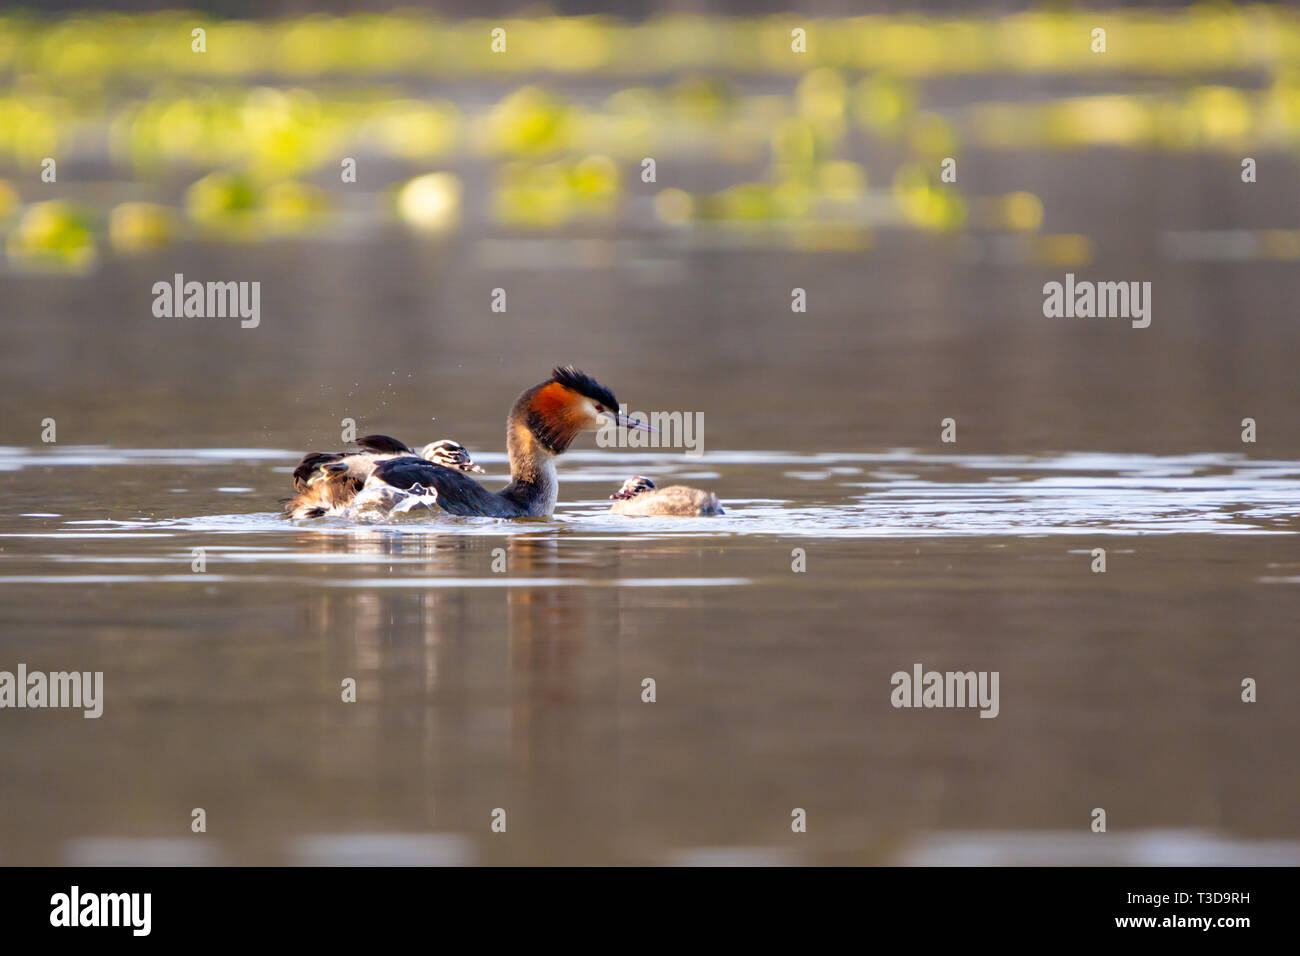 Colour wildlife portrait photograph of adult Great crested grebe (Podiceps cristatus) with chick on back whilst swimming on water. Taken on Hatchpond, Stock Photo